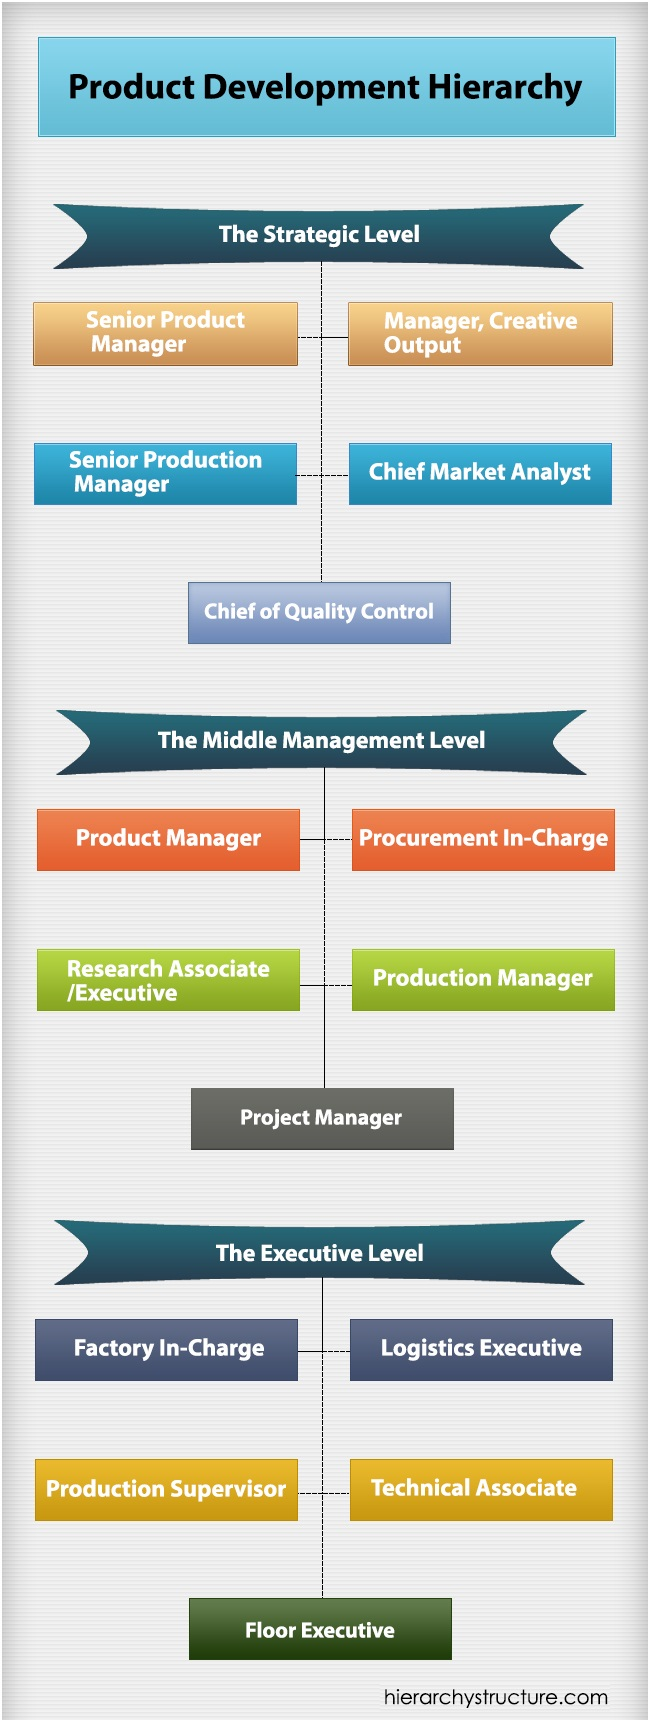 Product Development Hierarchy